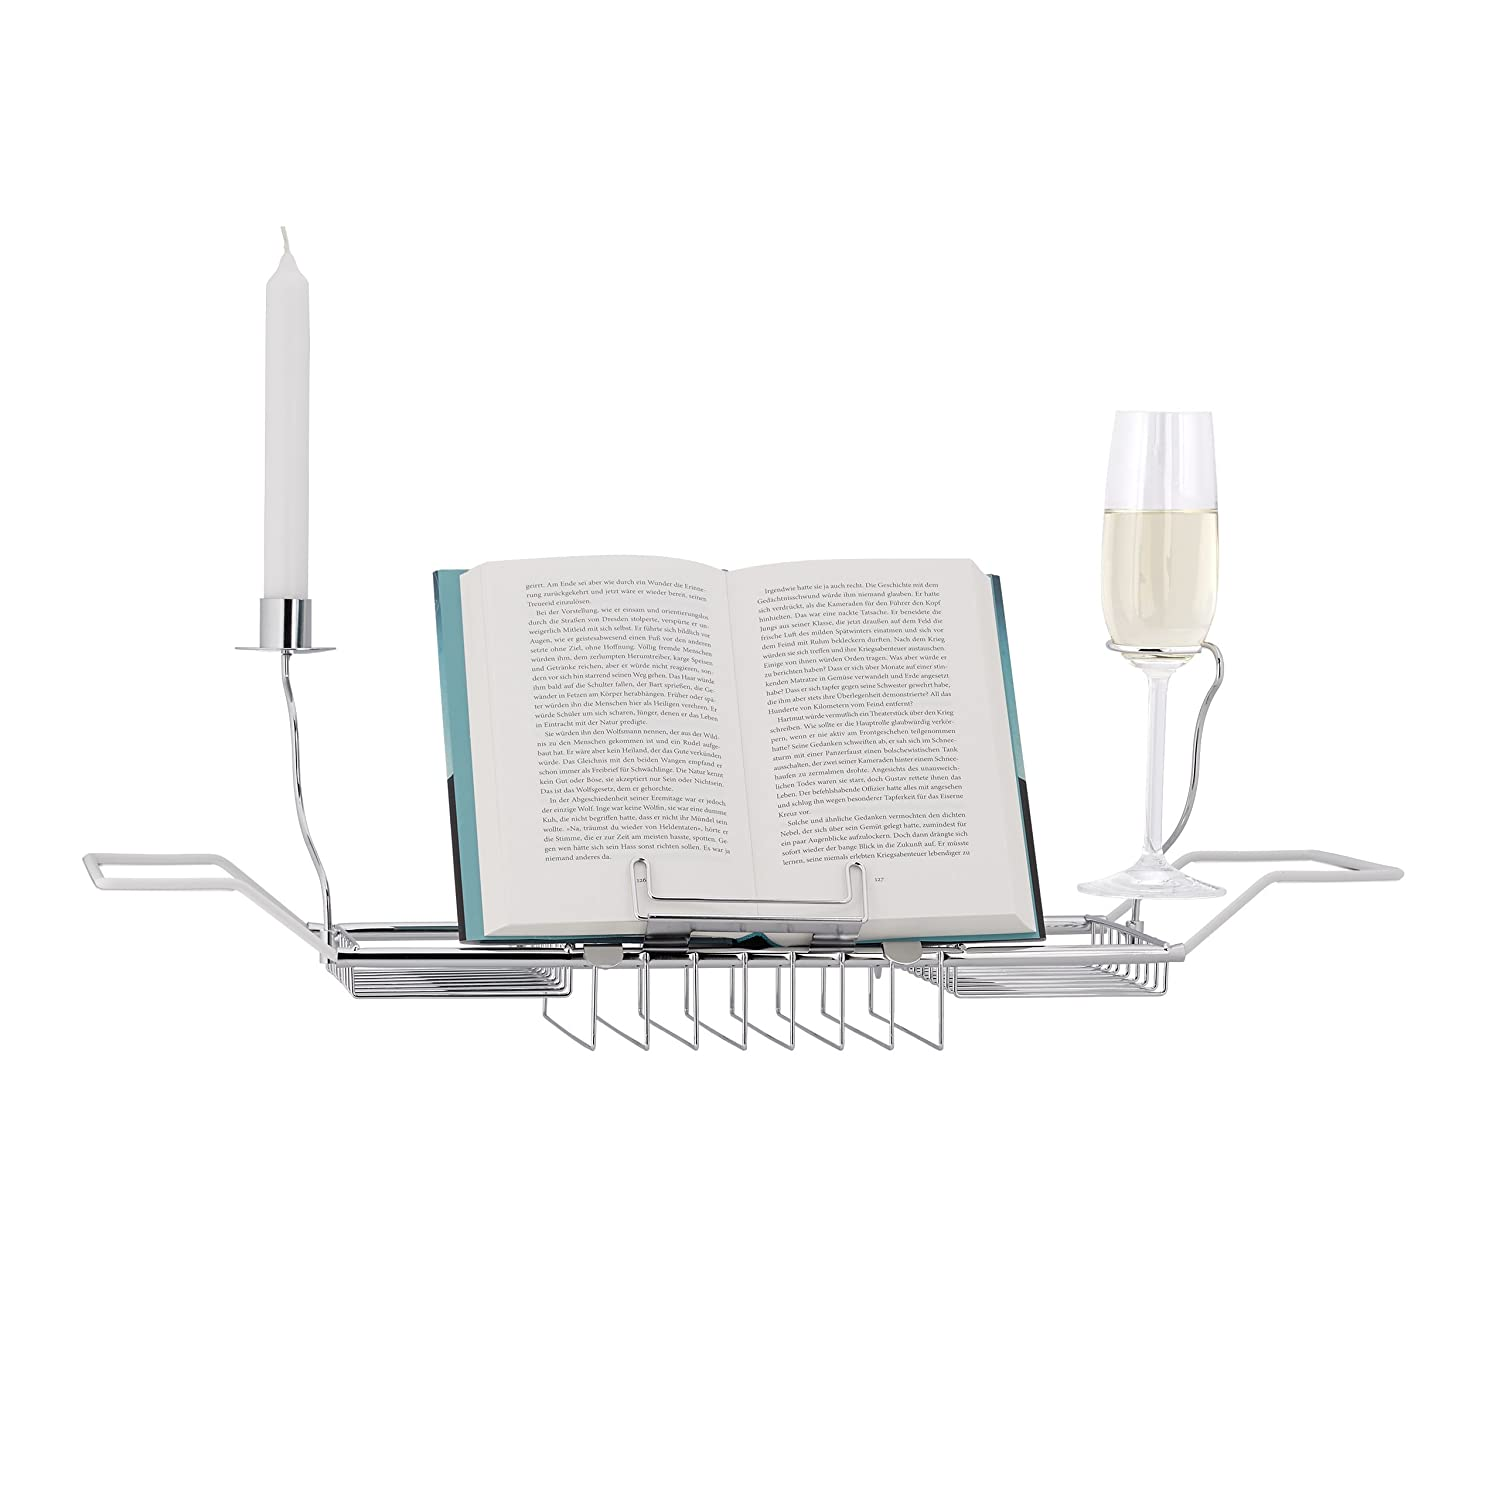 Relaxdays Bathtub Caddy, Book Stand, 2 Wine Glass Holders and Candle Holder, Stainless-Steel, White 10010133